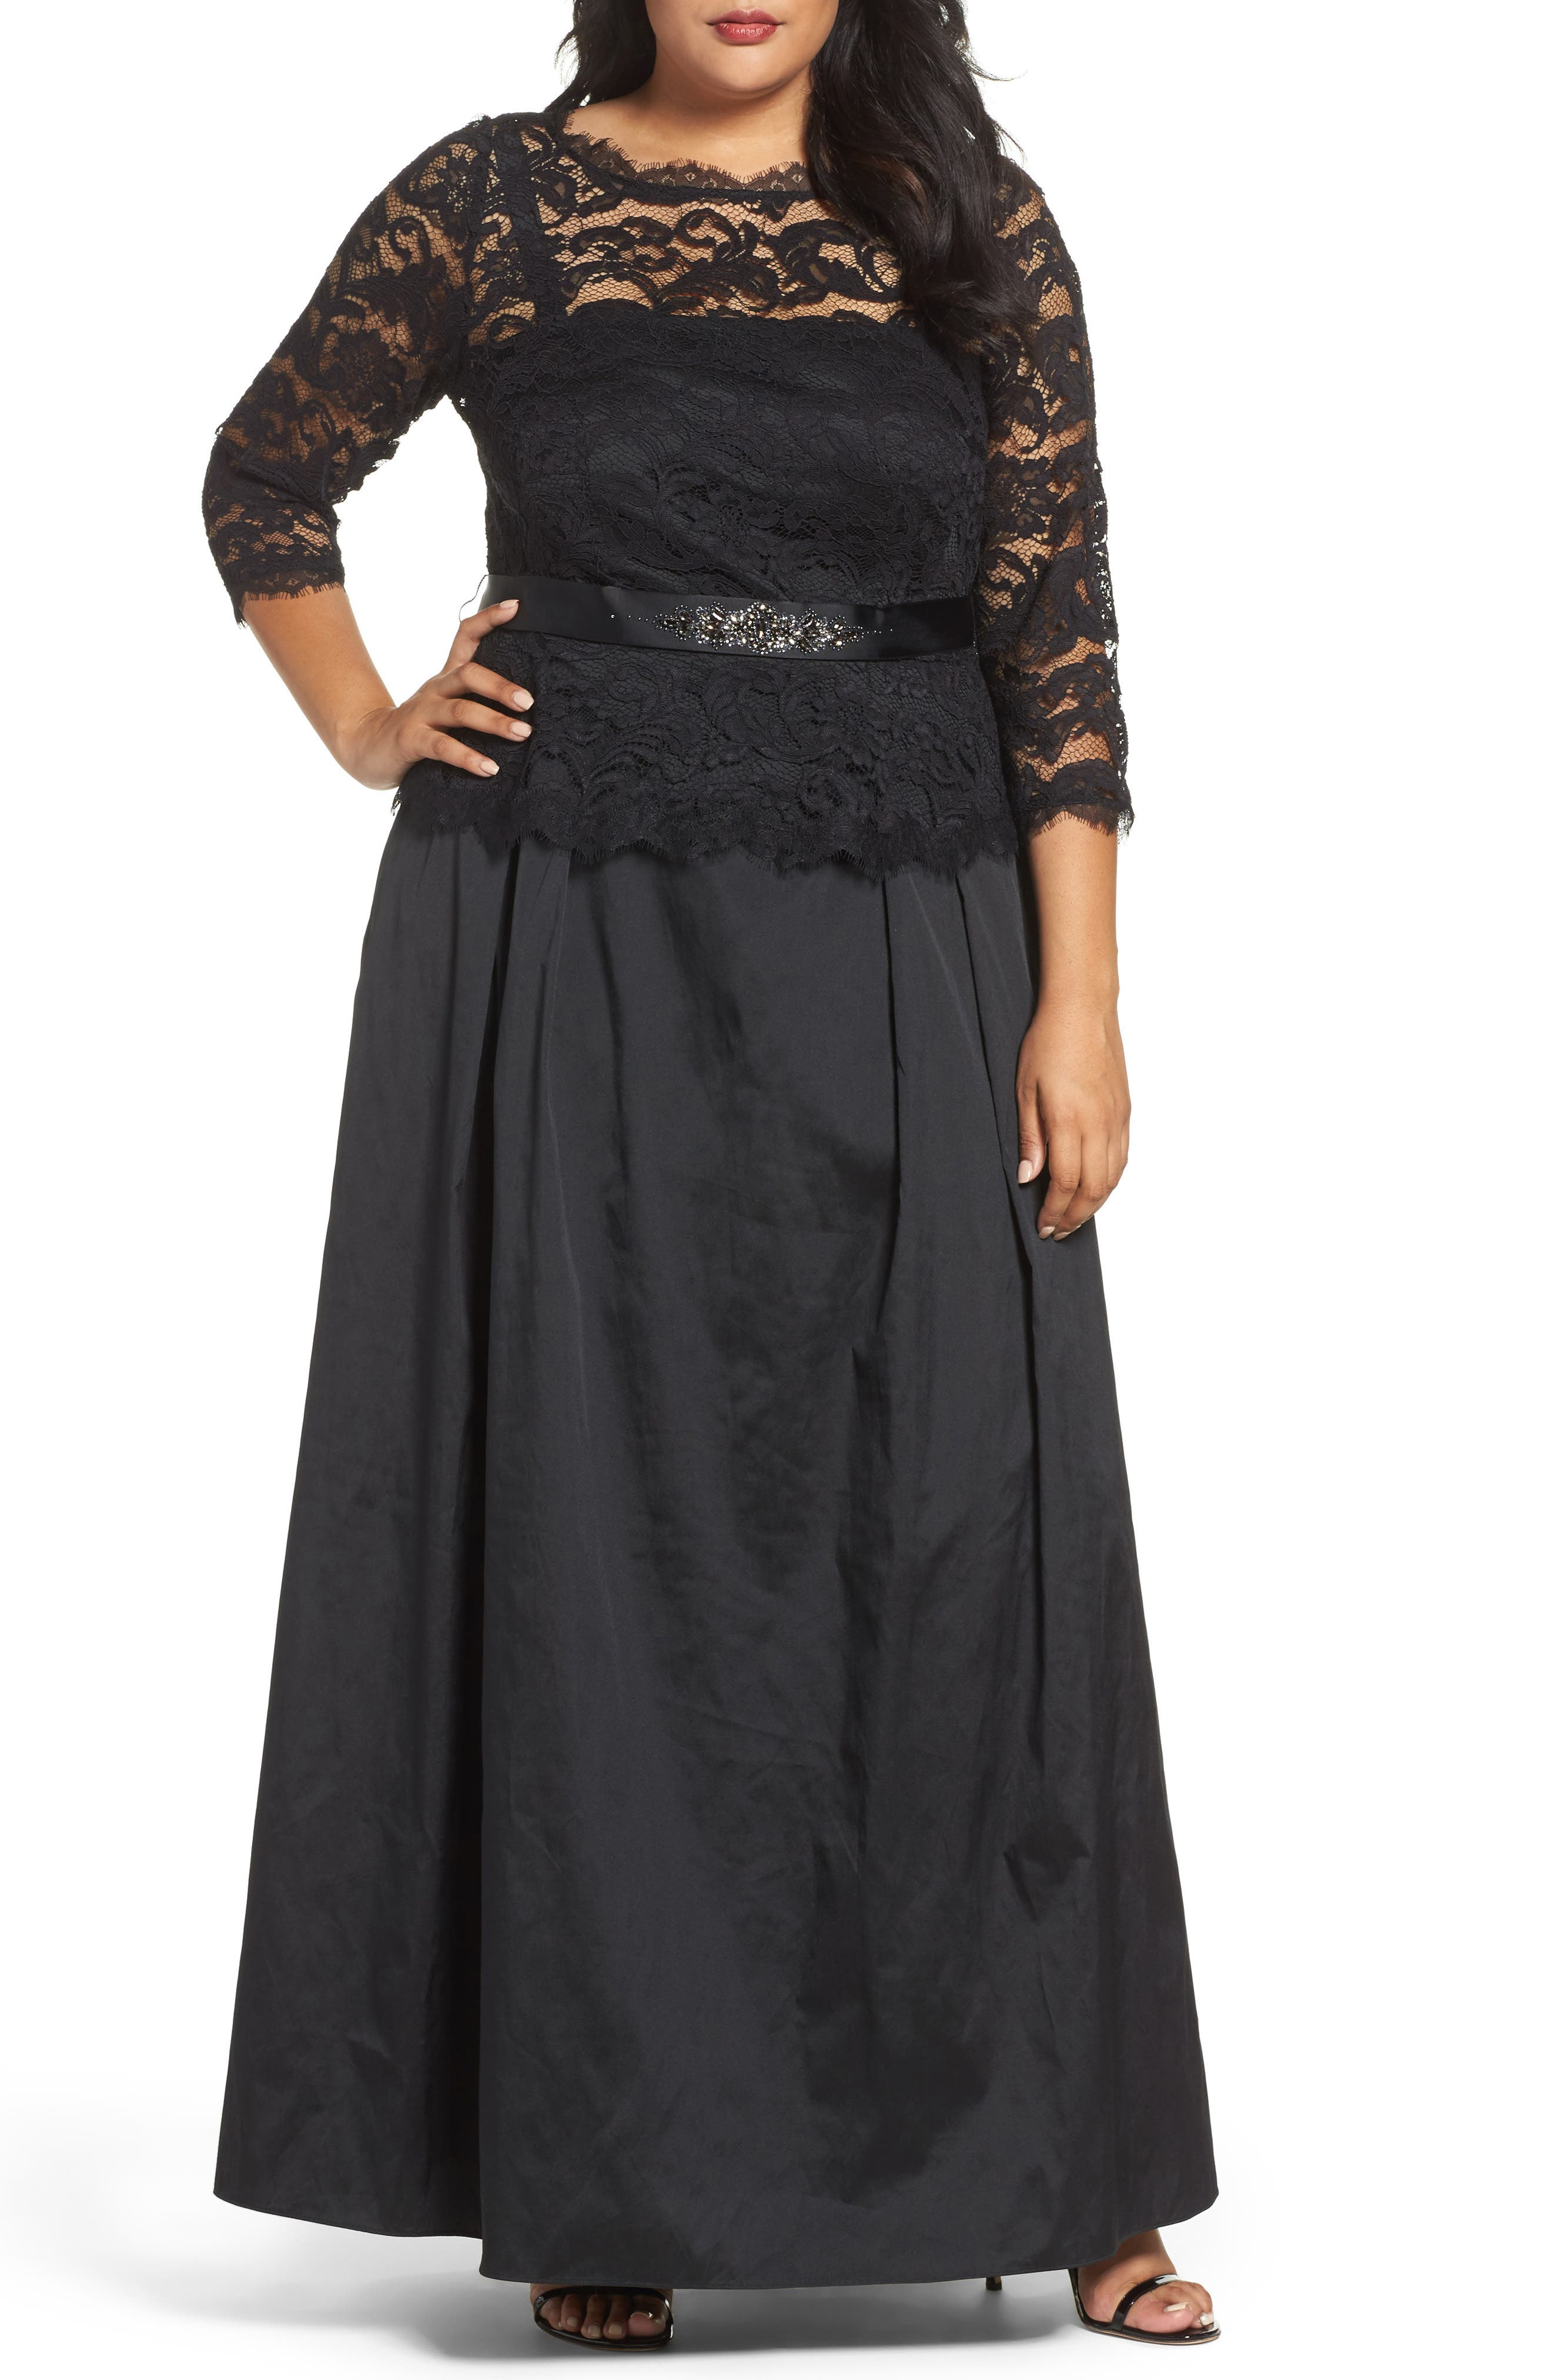 Alternate Image 1 Selected - Adrianna Papell Nouveau Scroll Illusion Lace Gown (Plus Size)